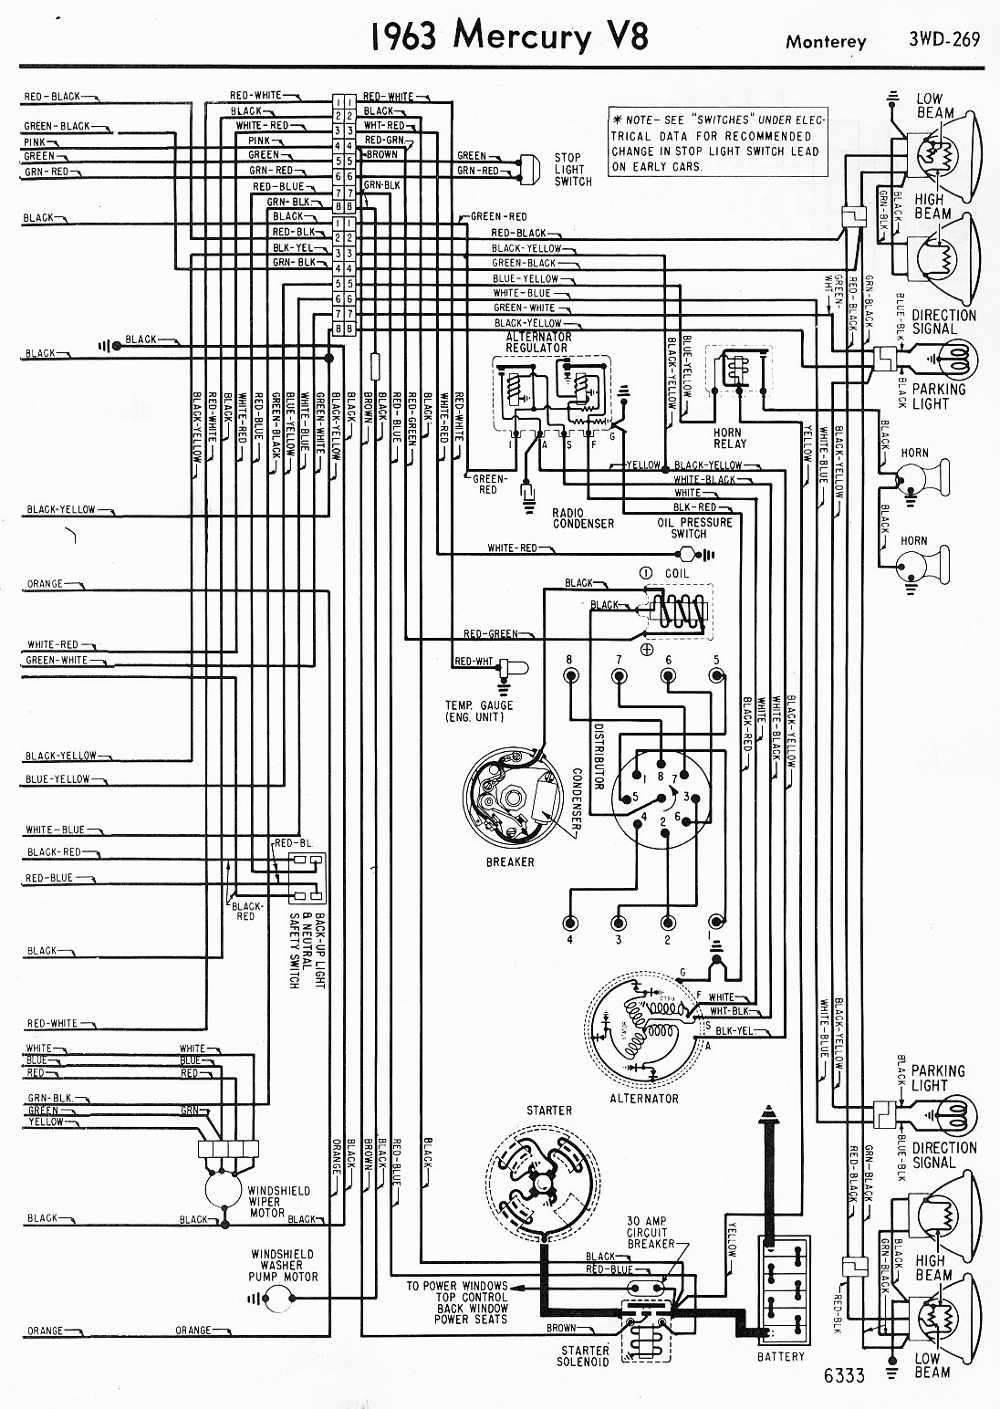 1967 Mustang Center Console Wiring Diagrams Free Download Diagram For Mallory Distributor Mercury Monterey Get Image Starter Solenoid